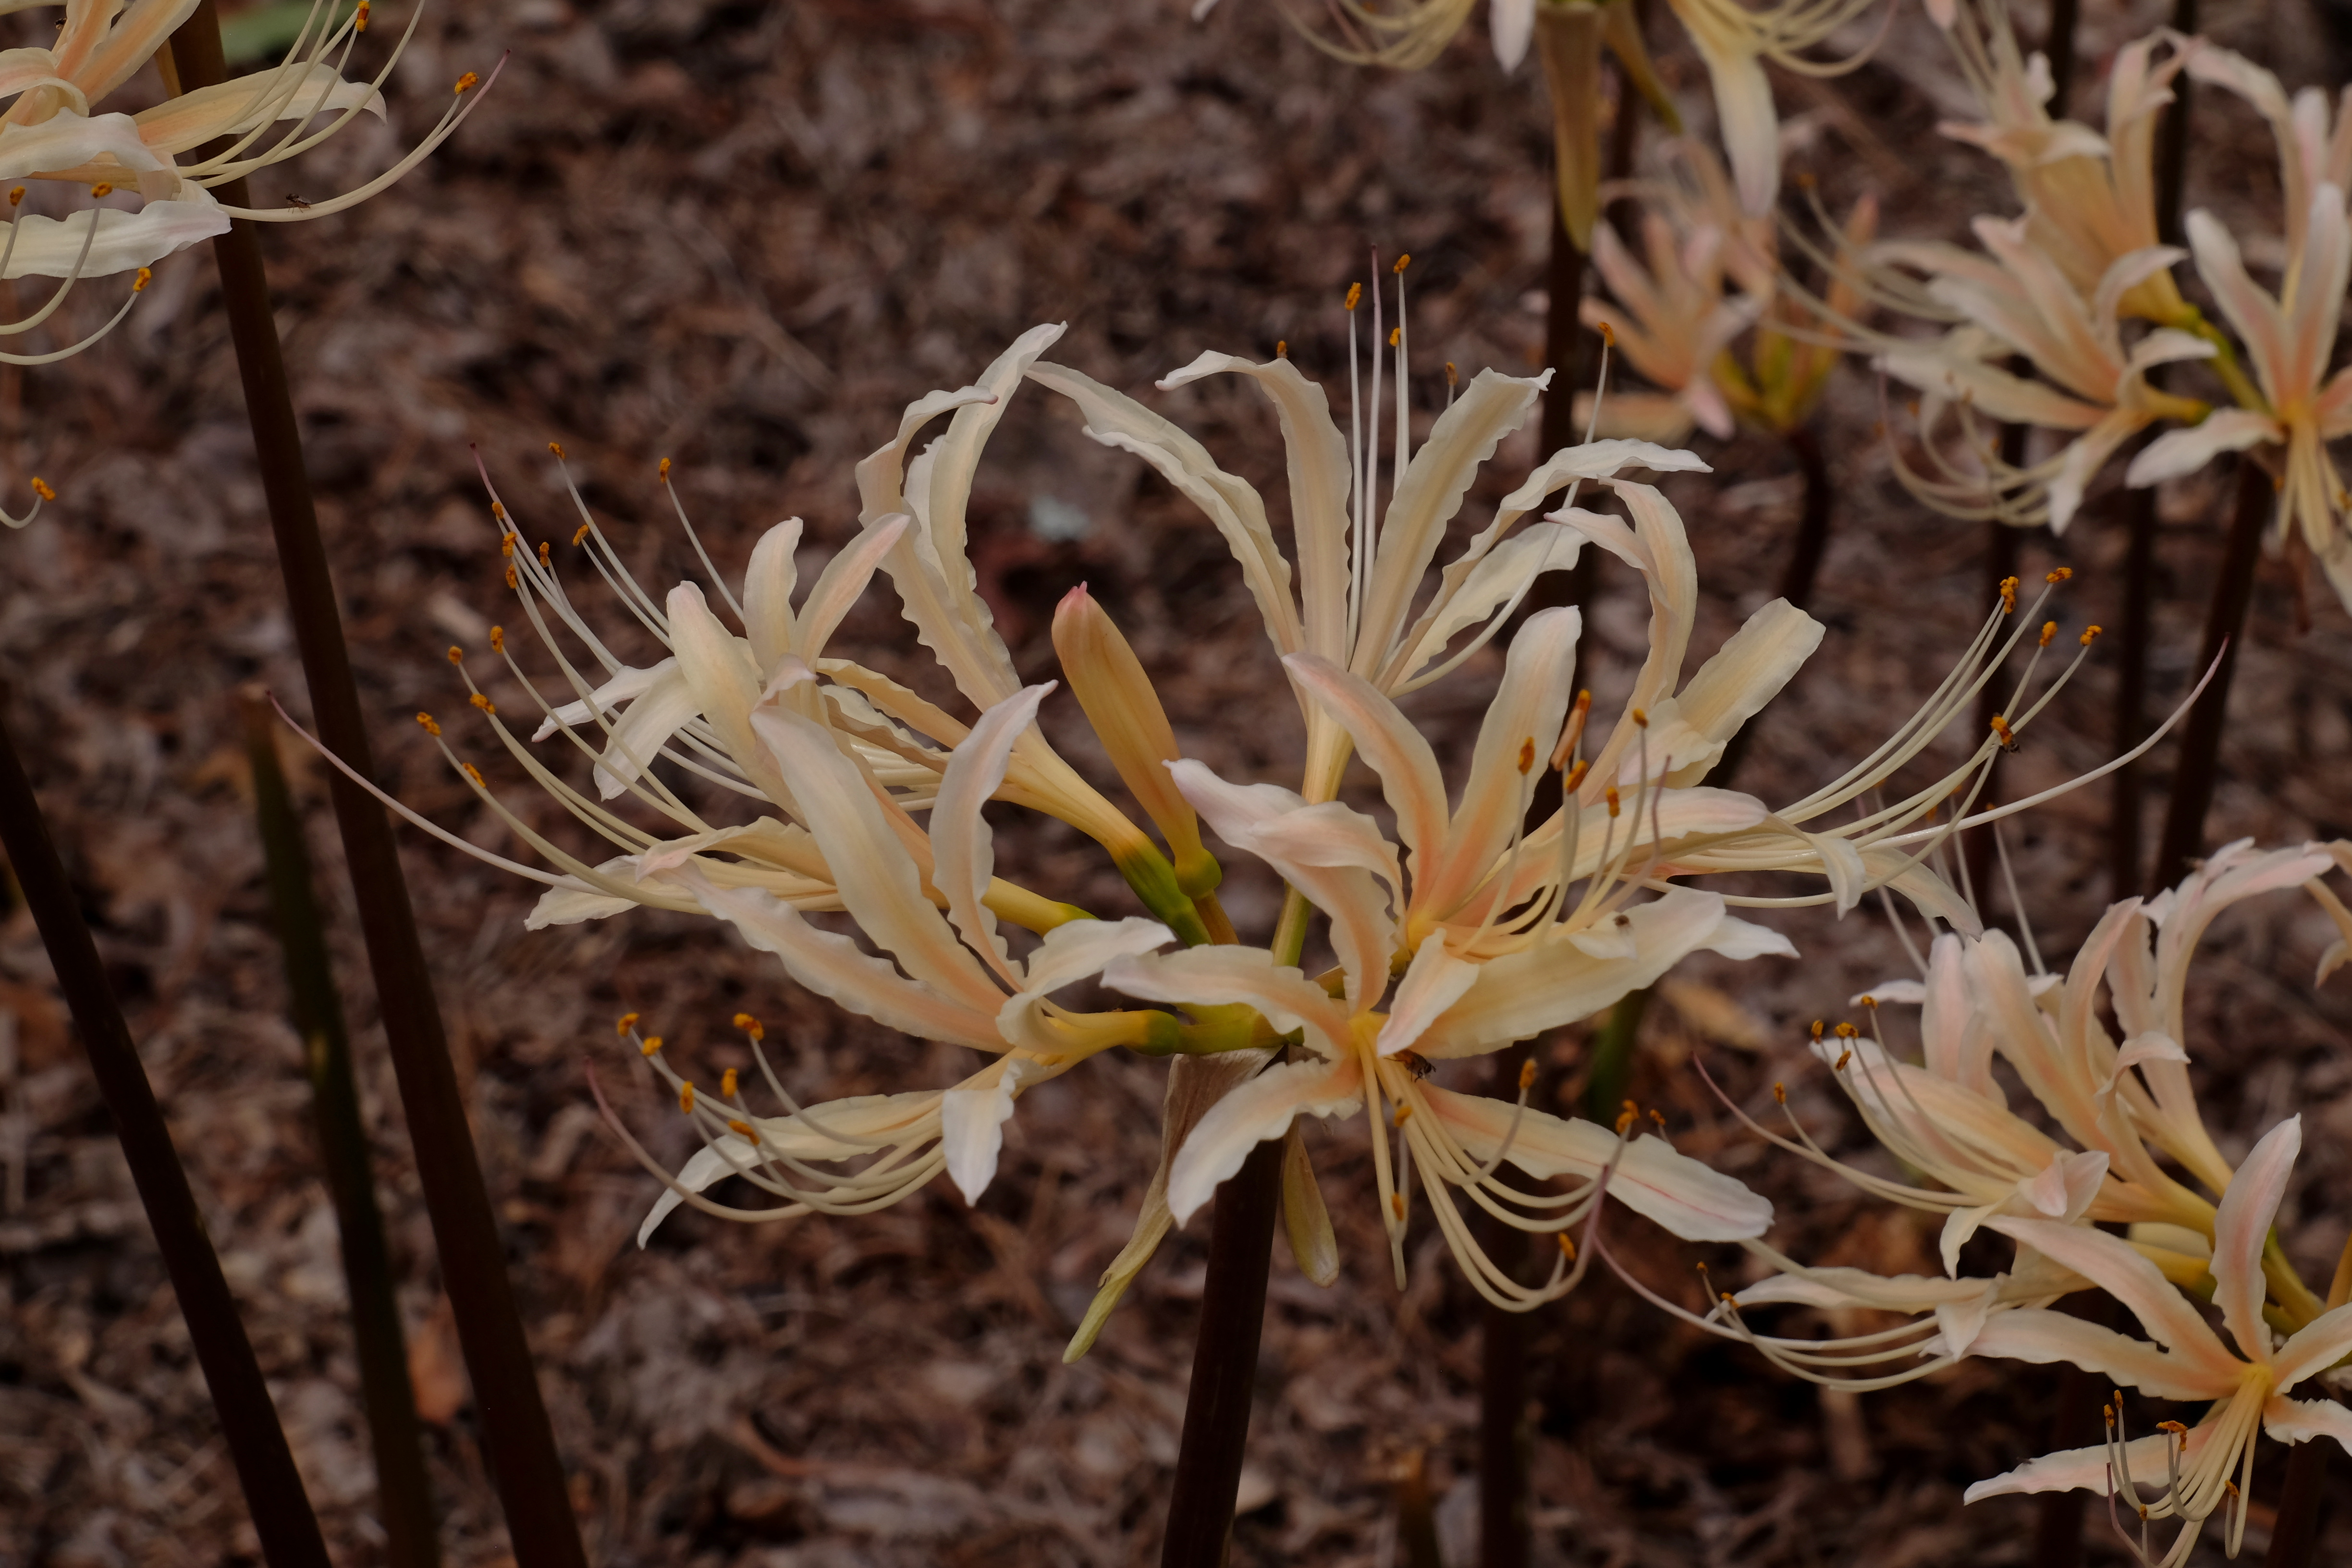 Lycoris x albiflora 'Dorman' @ JLBG - A passalong form of the hybrid of Lycoris aurea x radiata grown by plantswoman Caroline Dorman